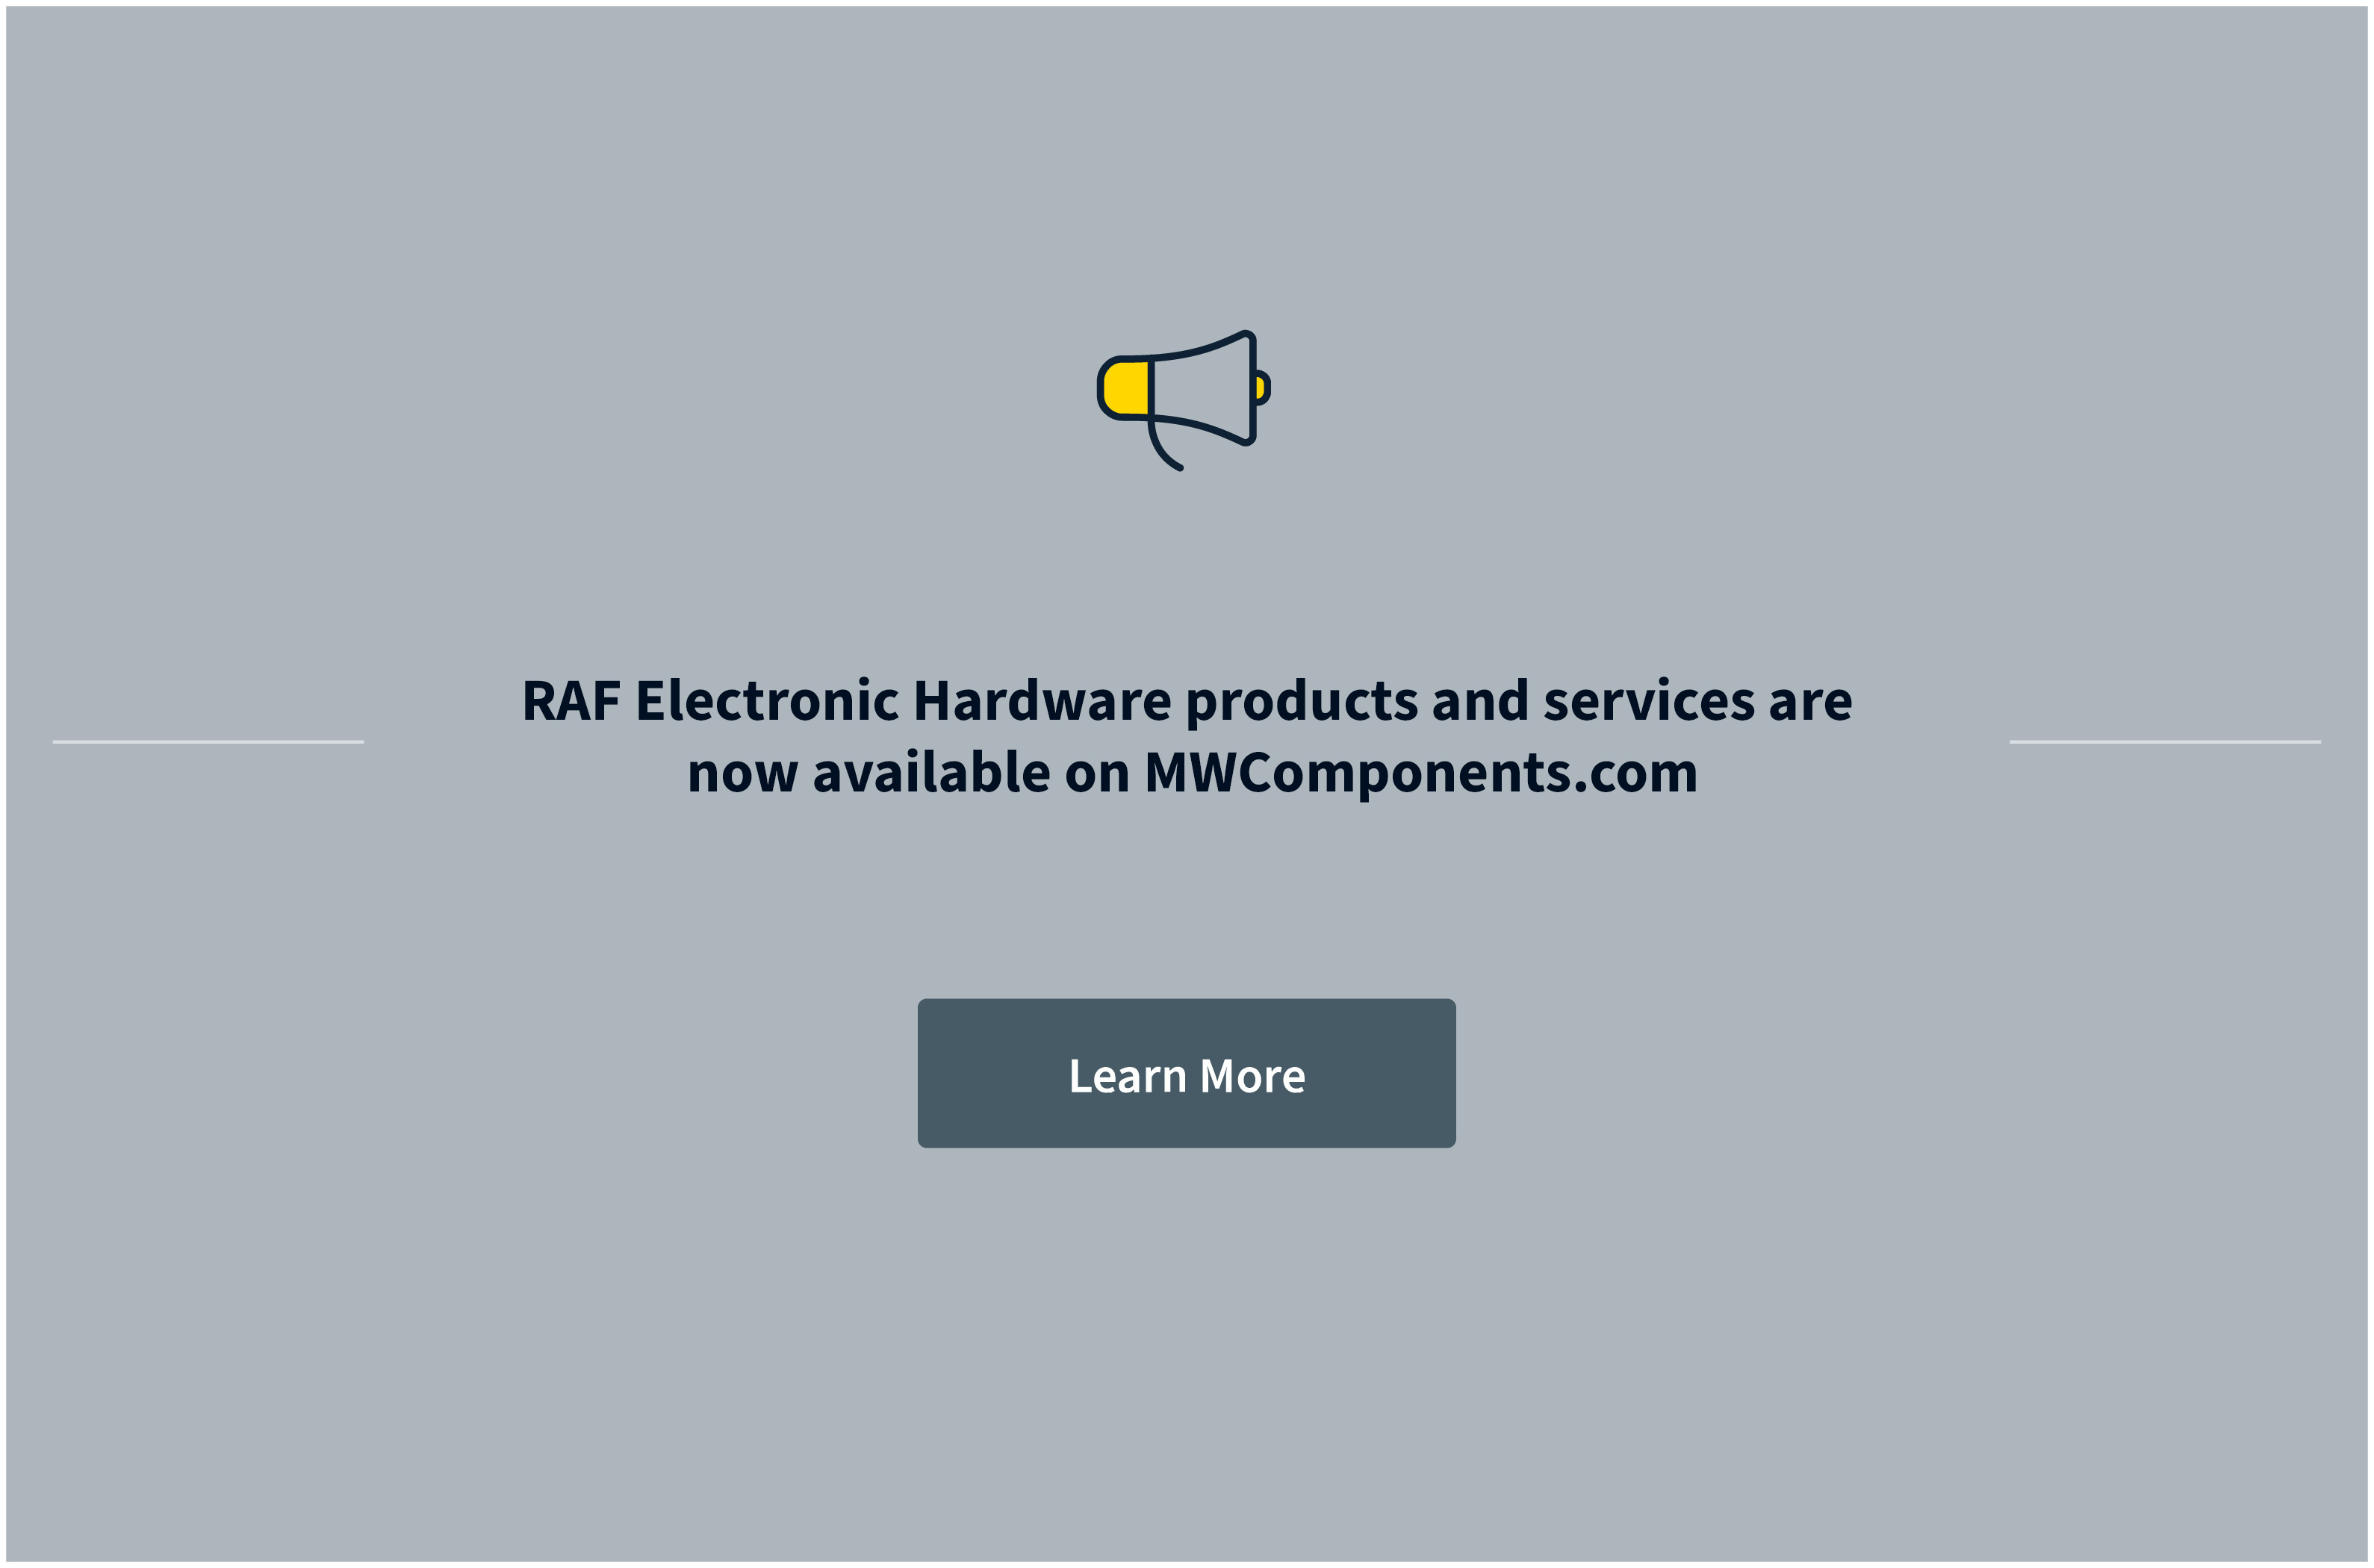 RAF Electronic Hardware is now part of MW Components